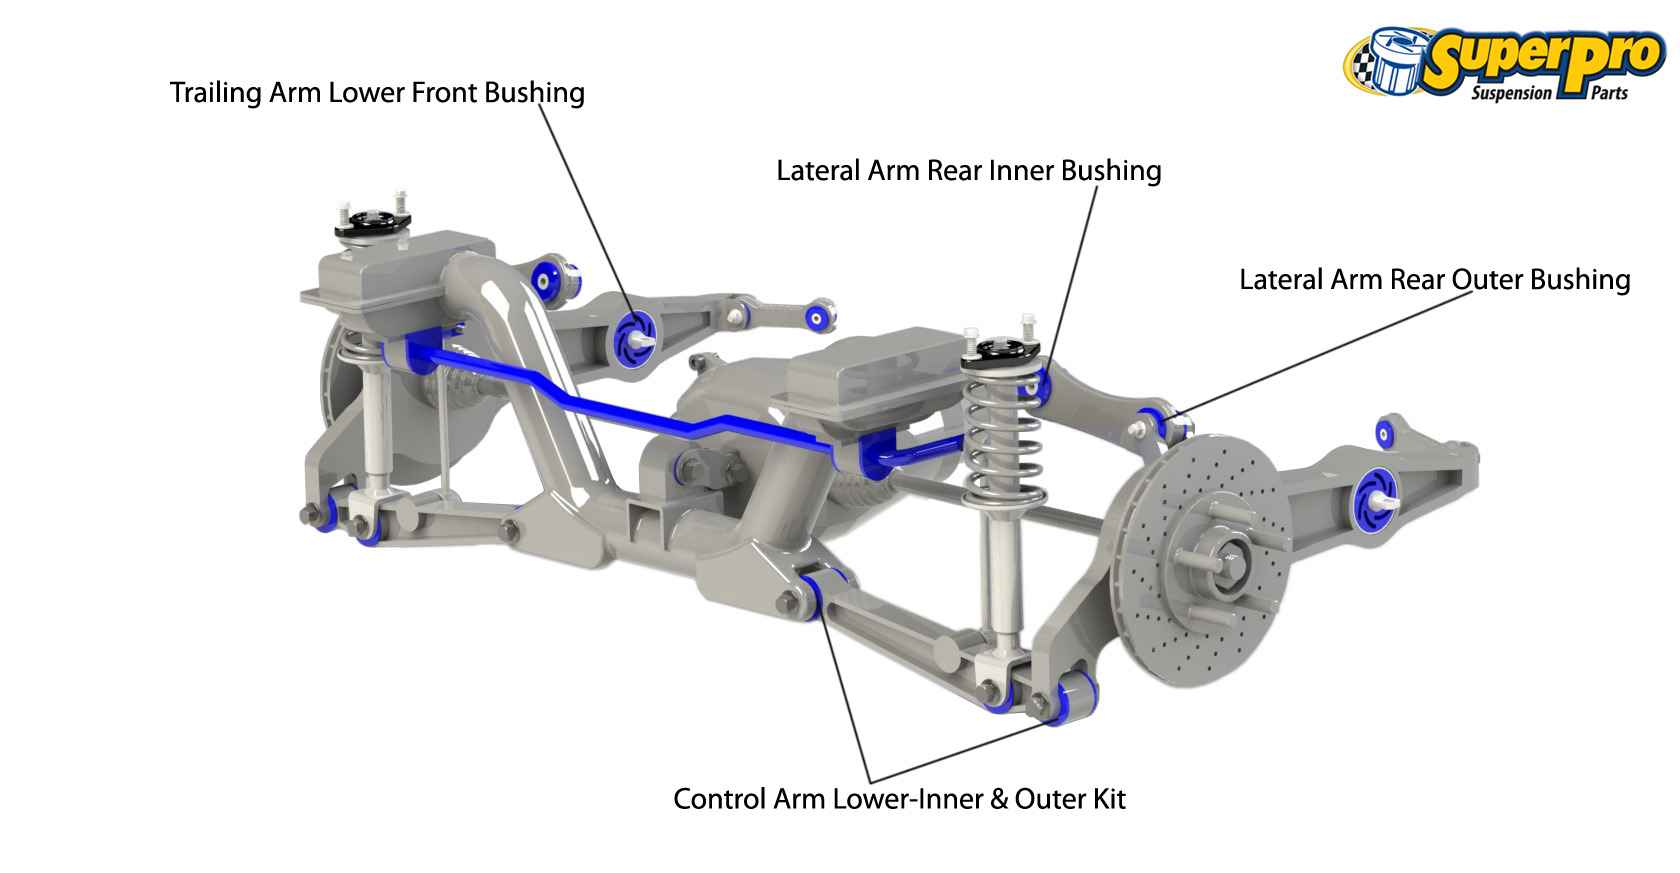 2001 honda crv parts diagram iron carbon phase ppt superpro suspension and poly bushings for cr v